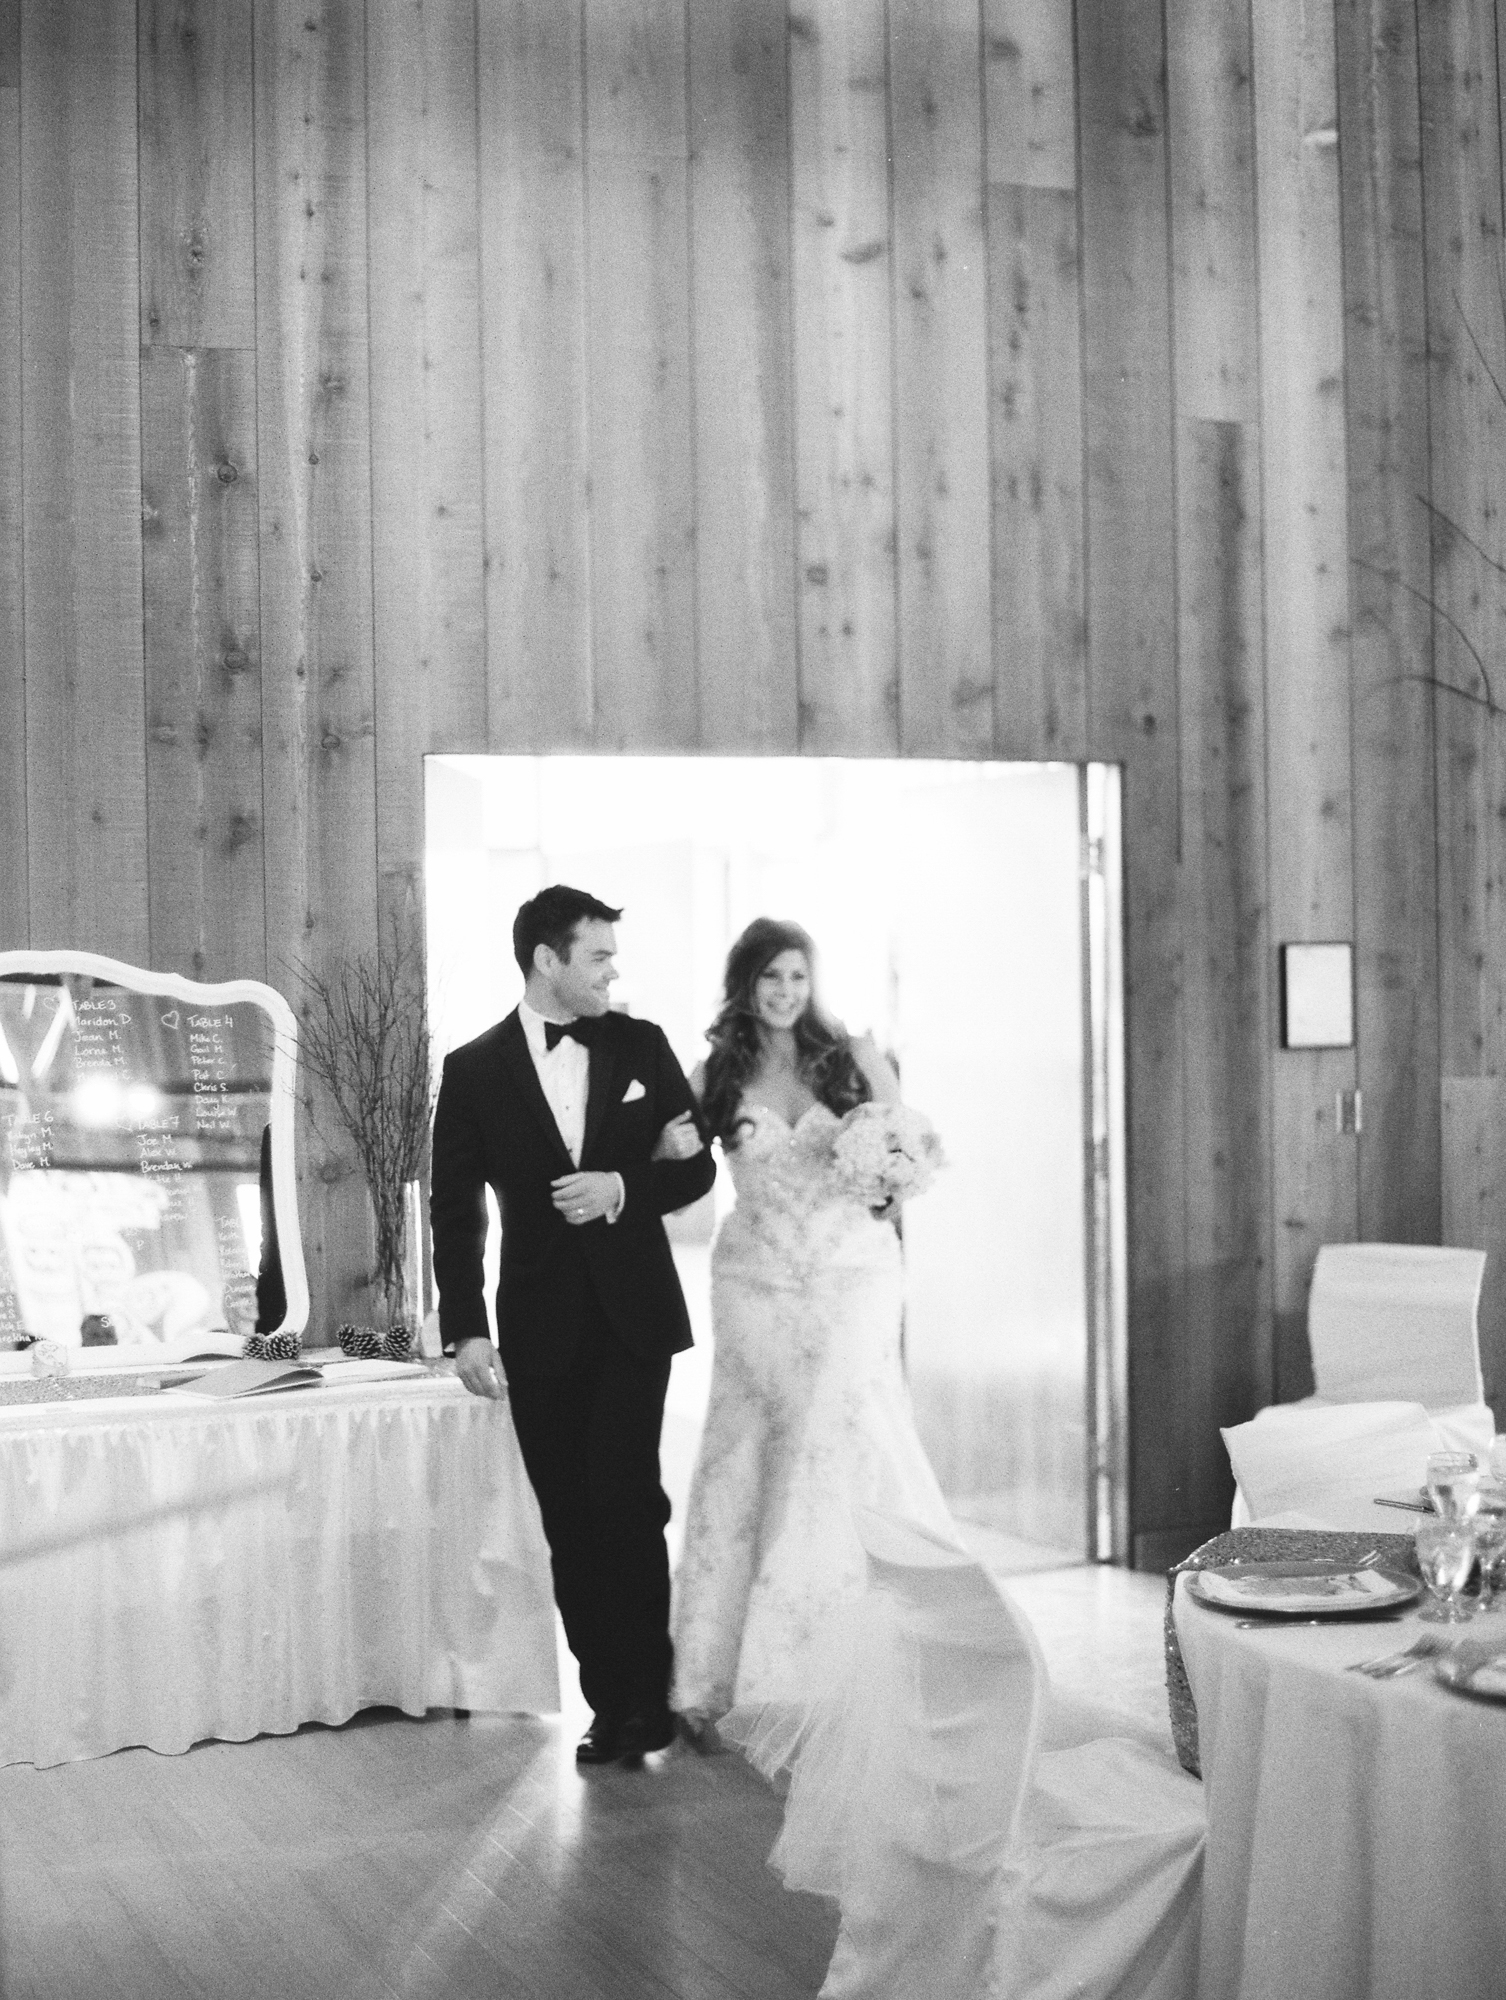 Bride and groom entering the hall